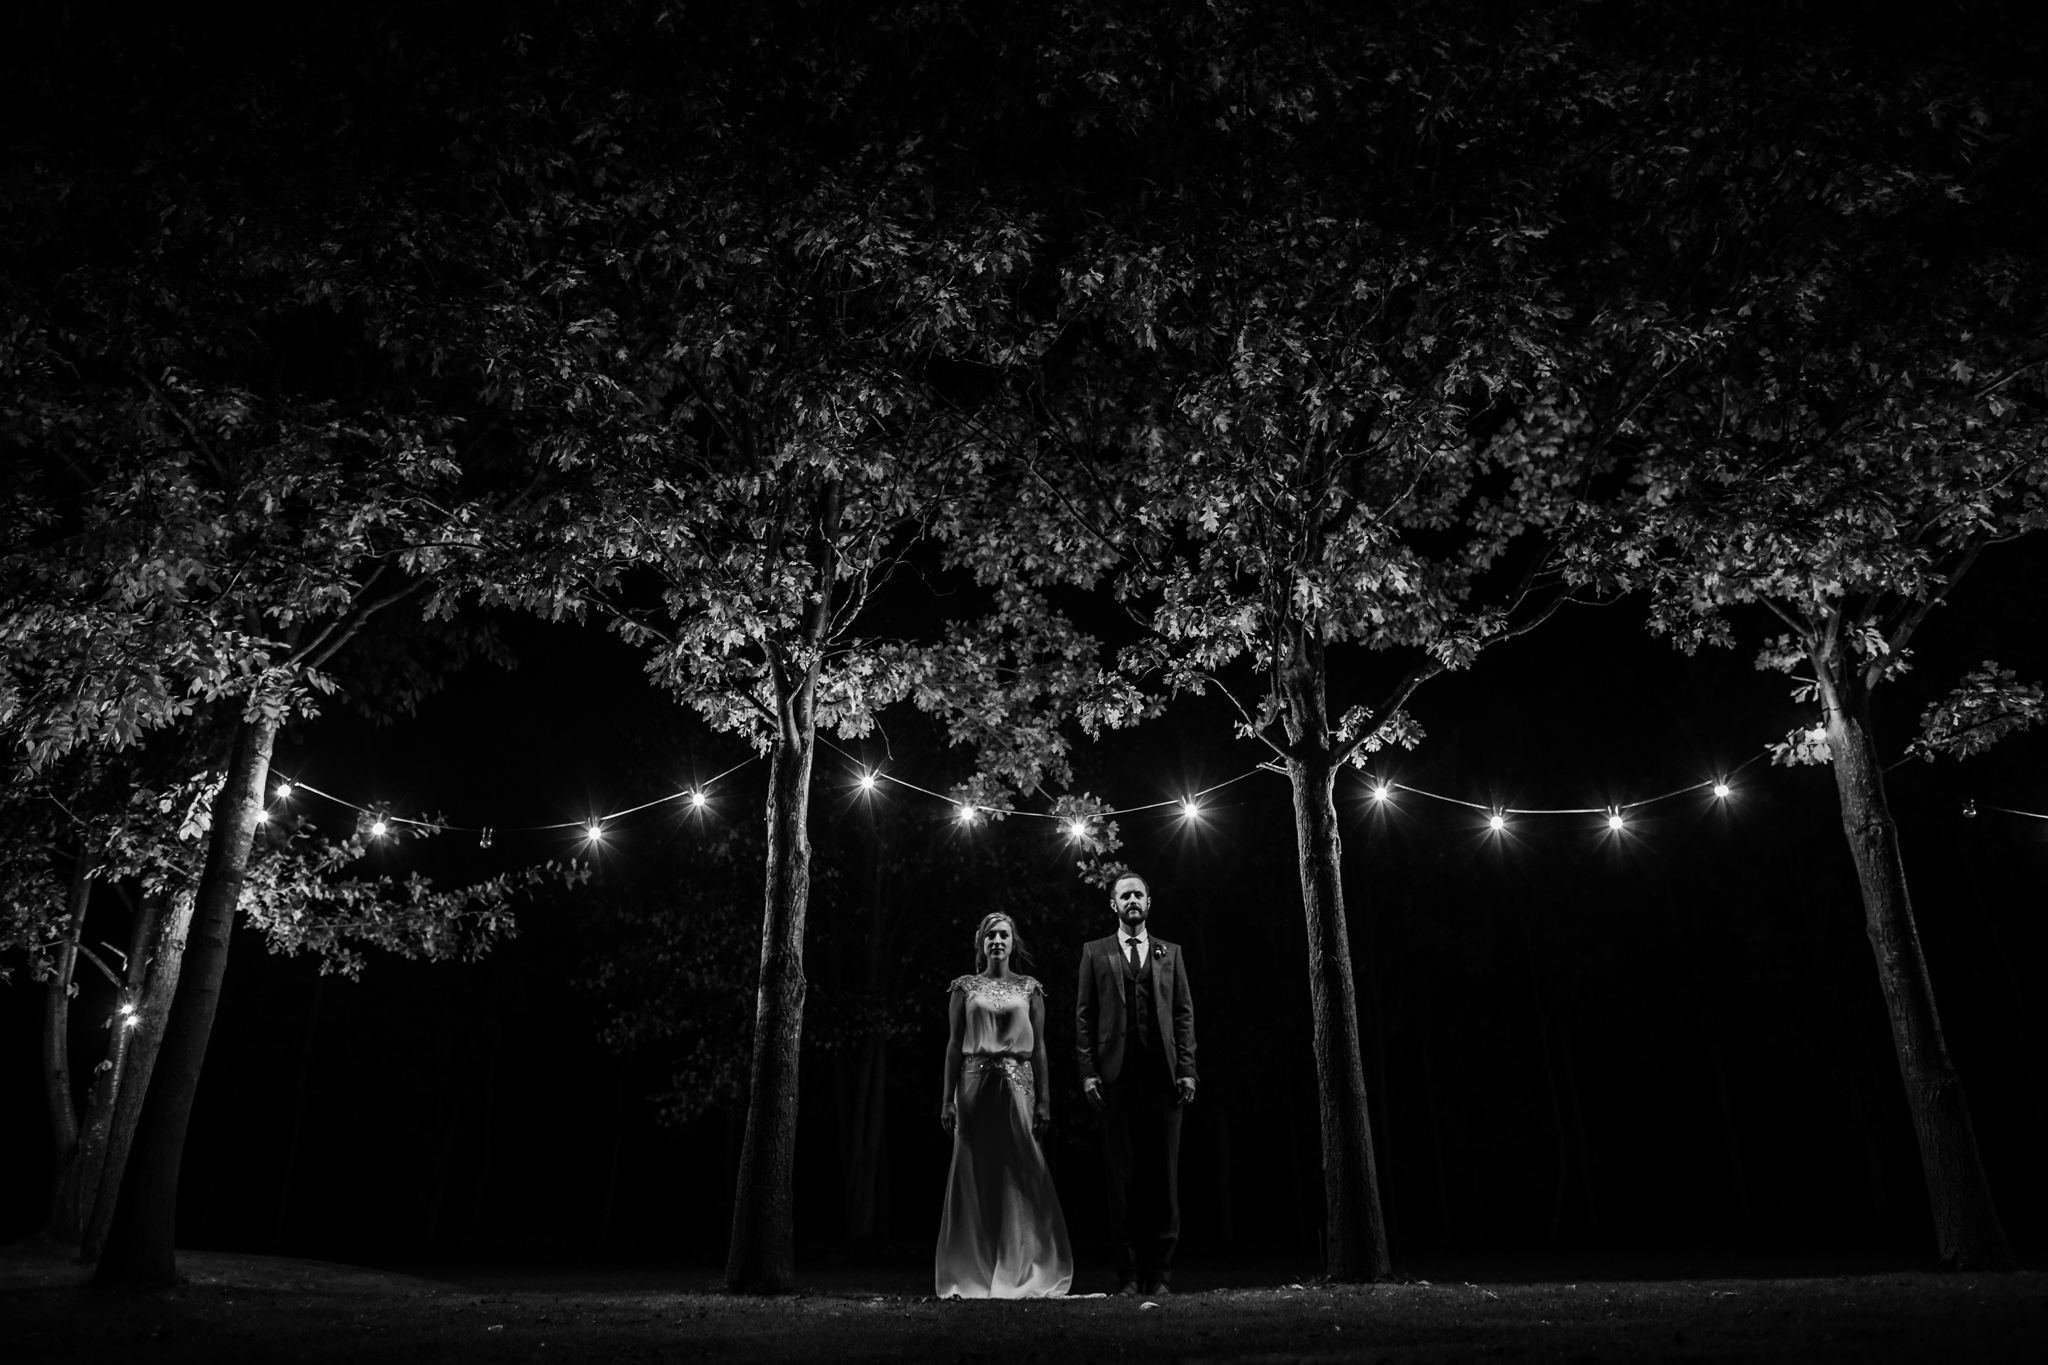 portraits under festoon lights at shustoke barn